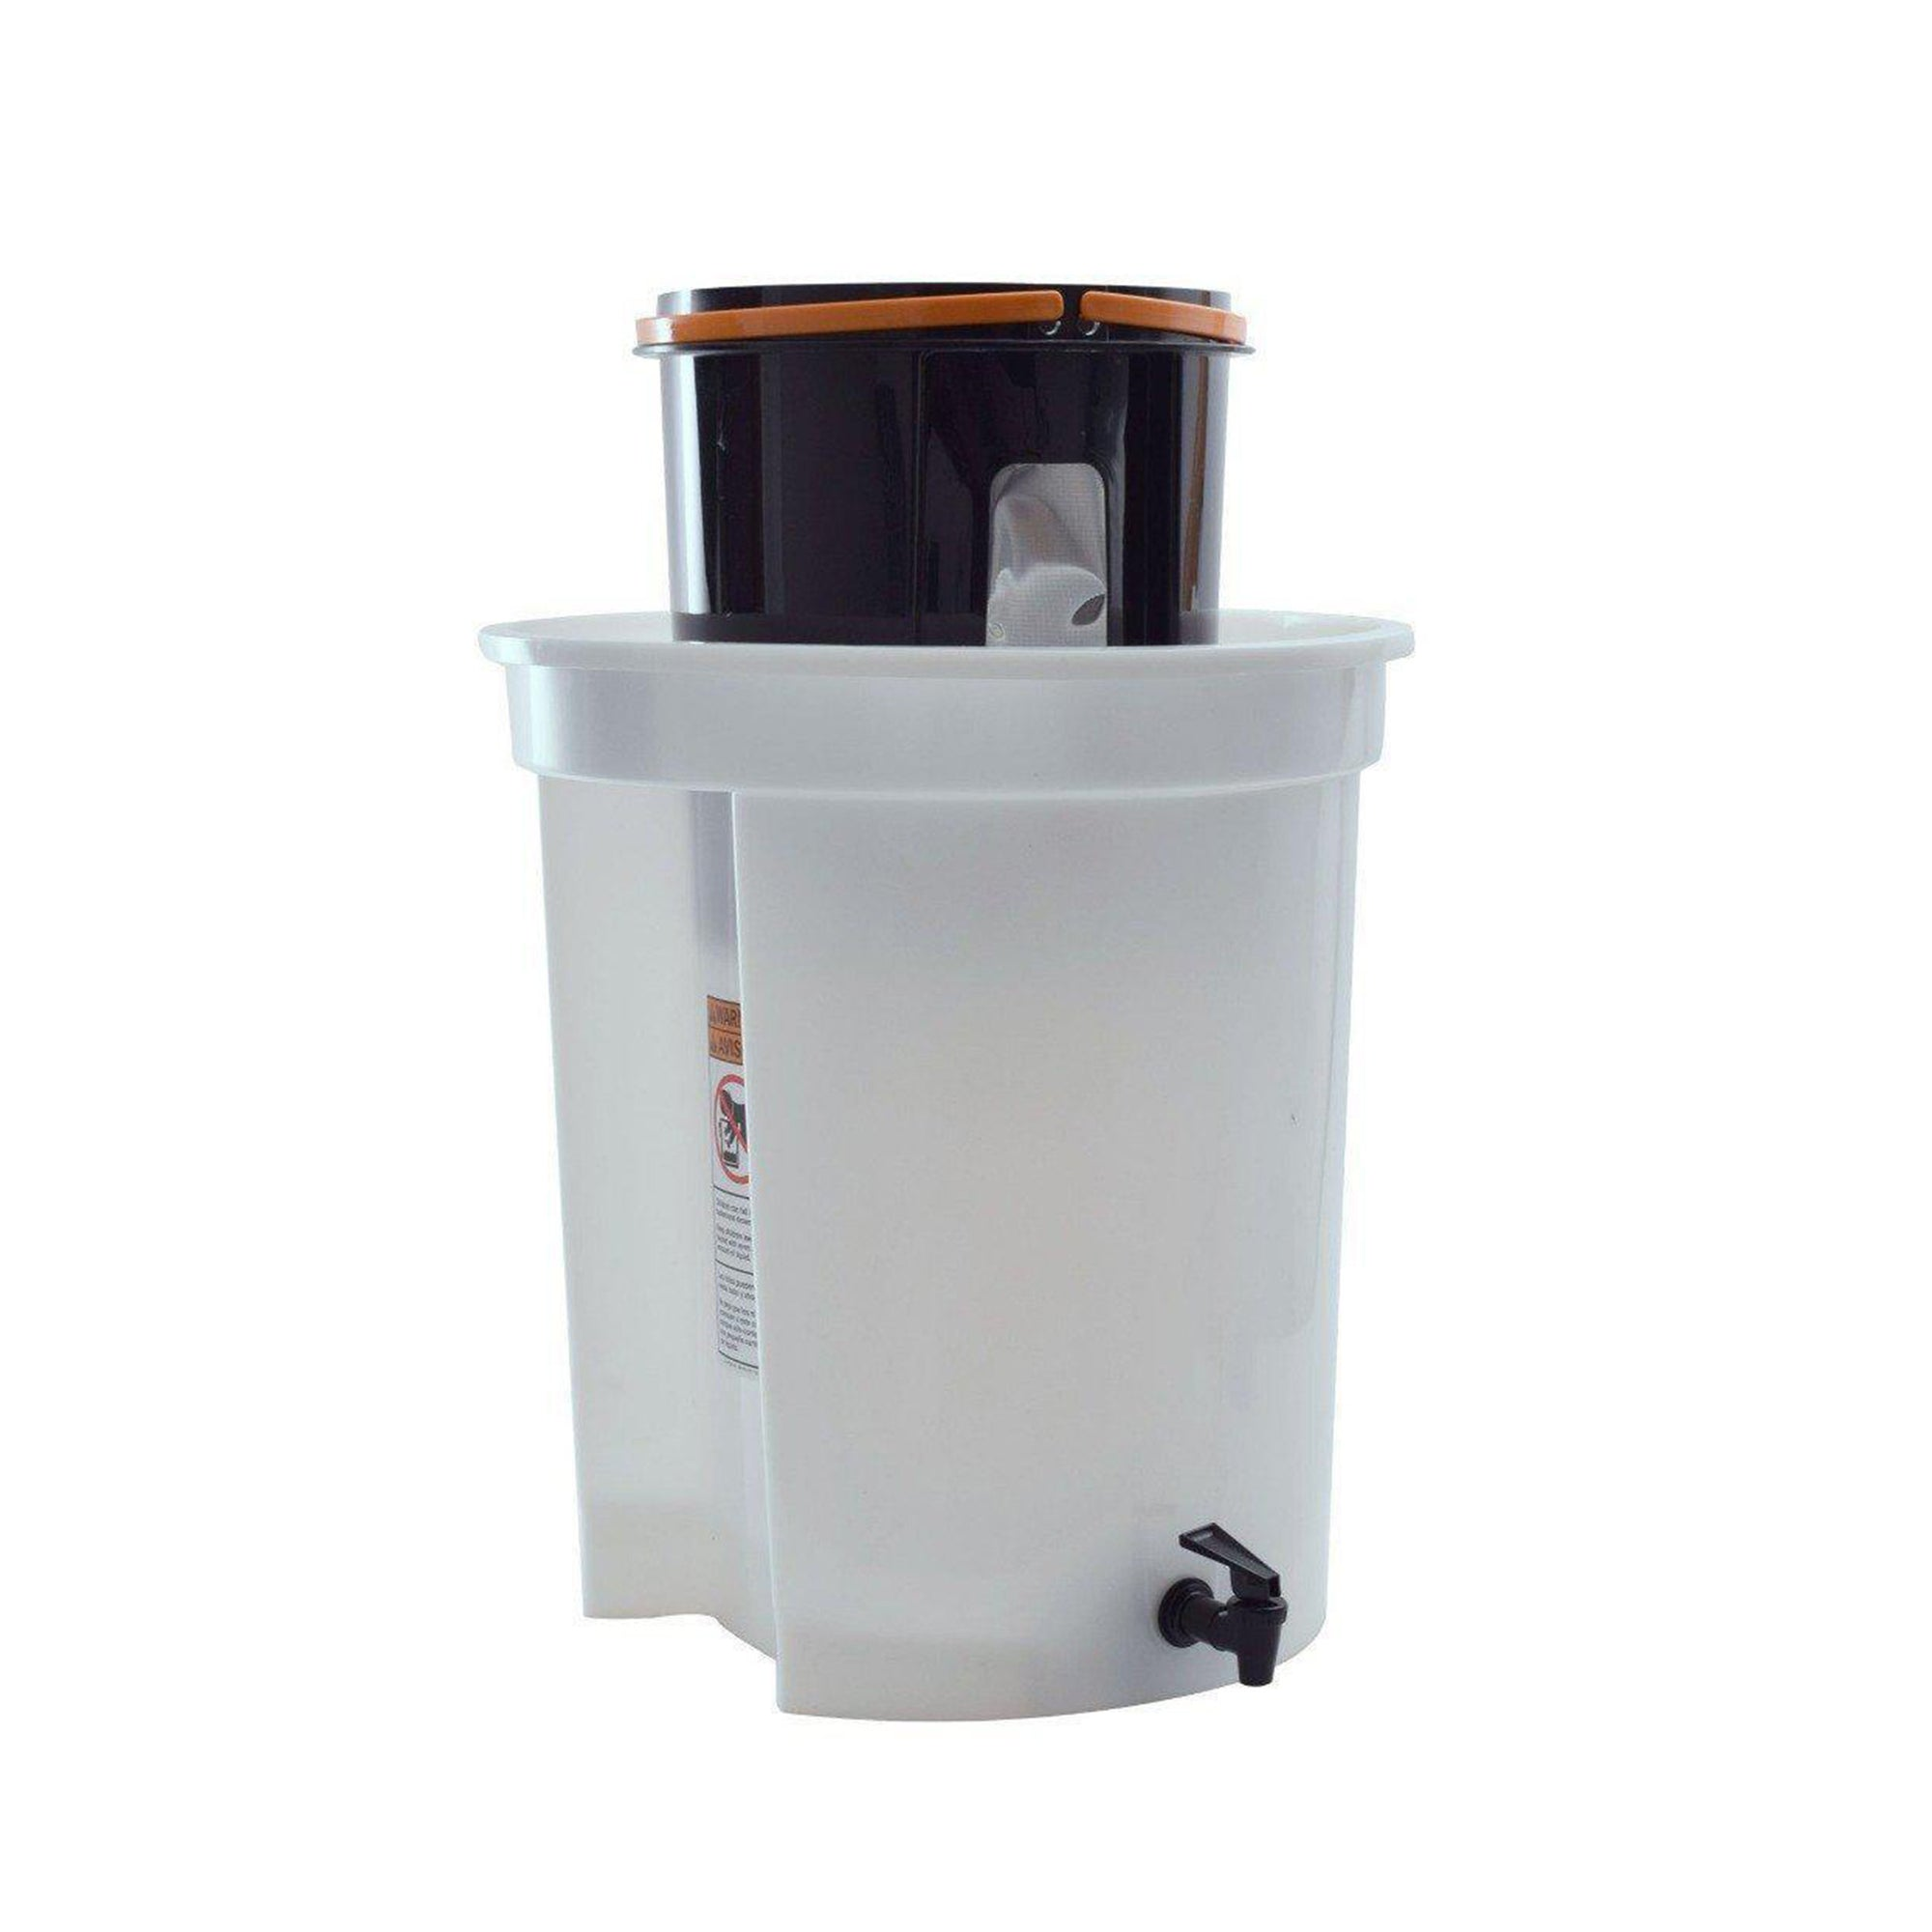 Brewista Cold Pro 2 Commercial Kit 25L - Espresso Gear